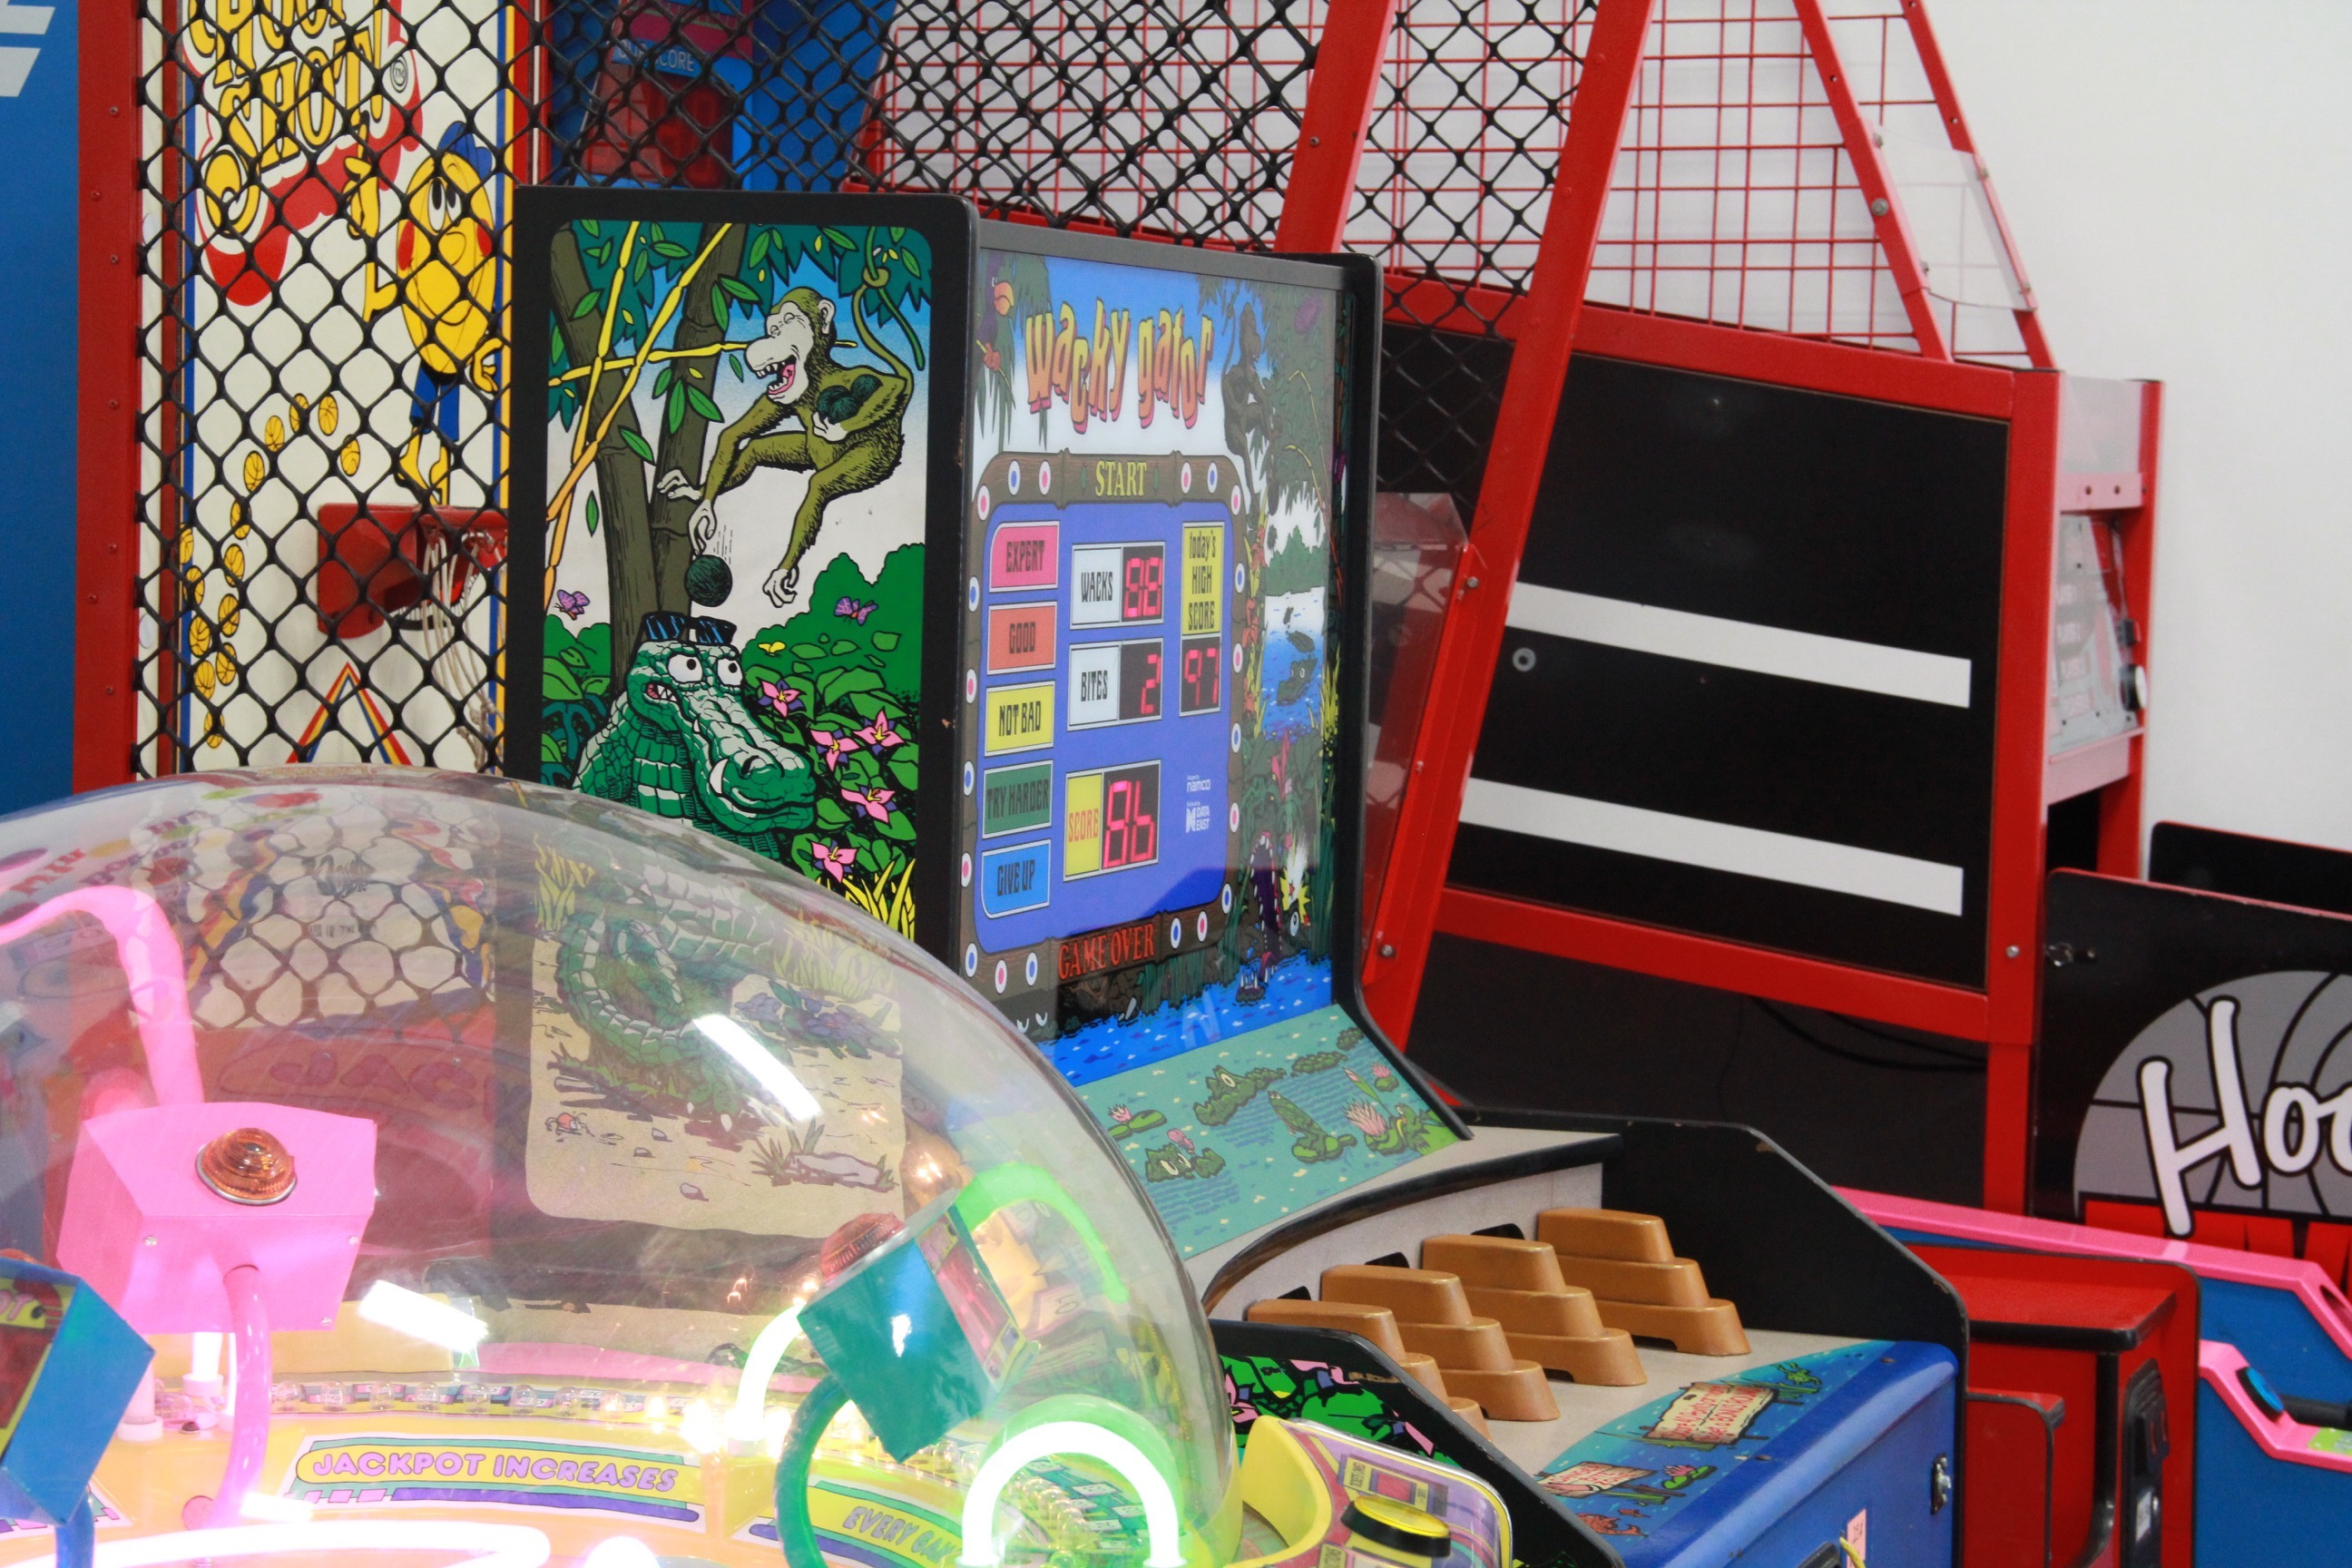 Arcade-games-at-big-bounce-fun-center